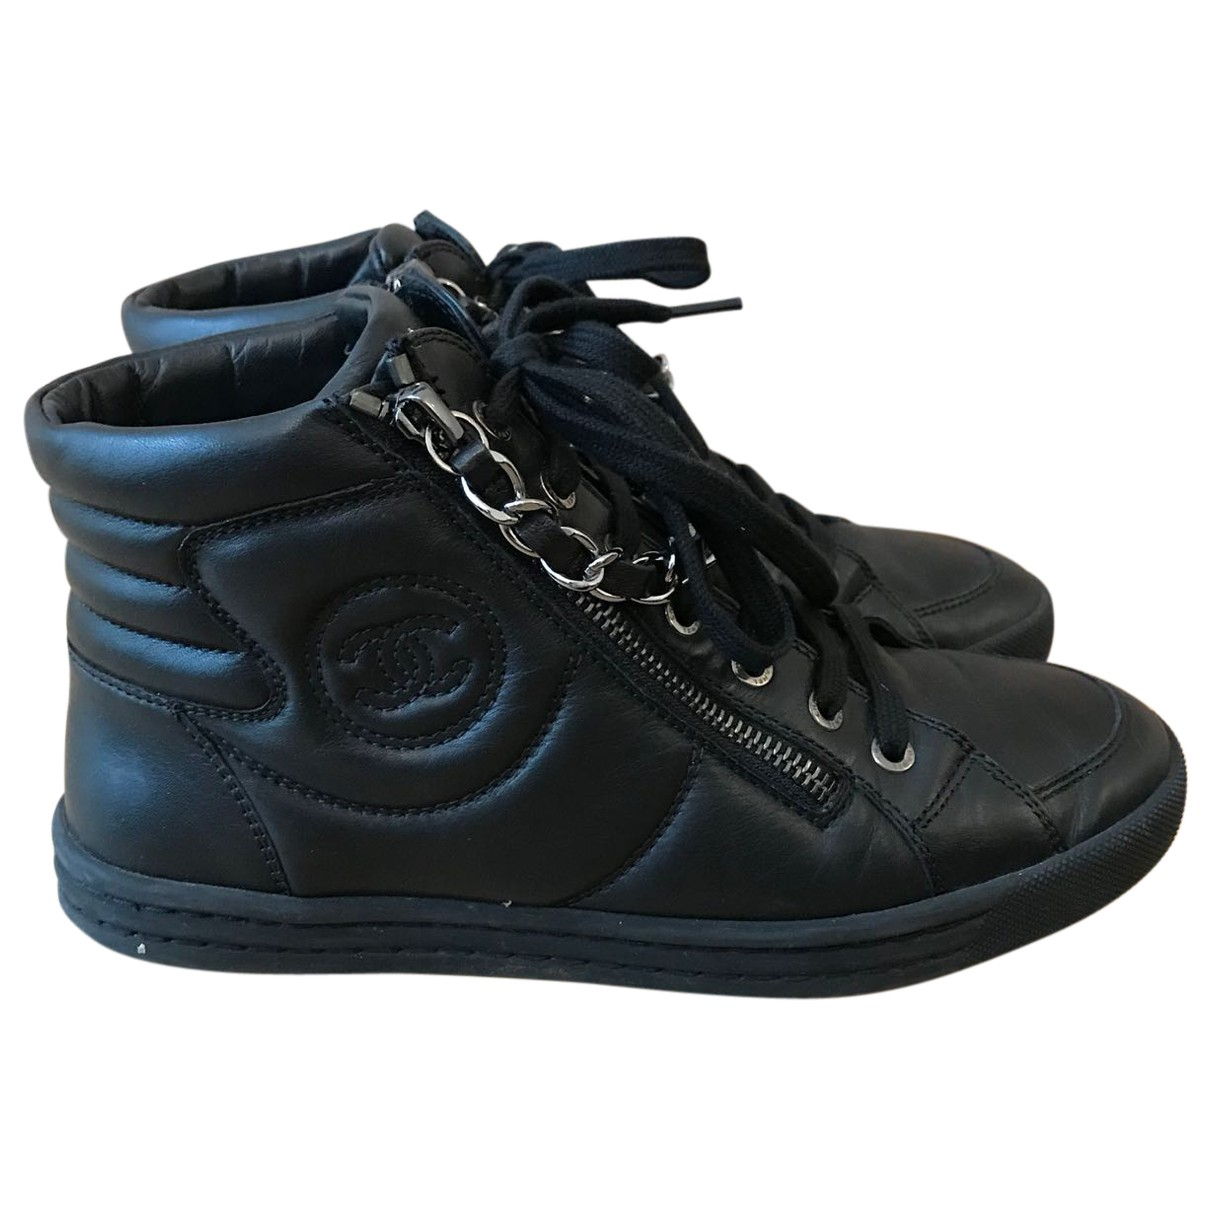 Chanel N Black Leather Trainers for Women 37 EU